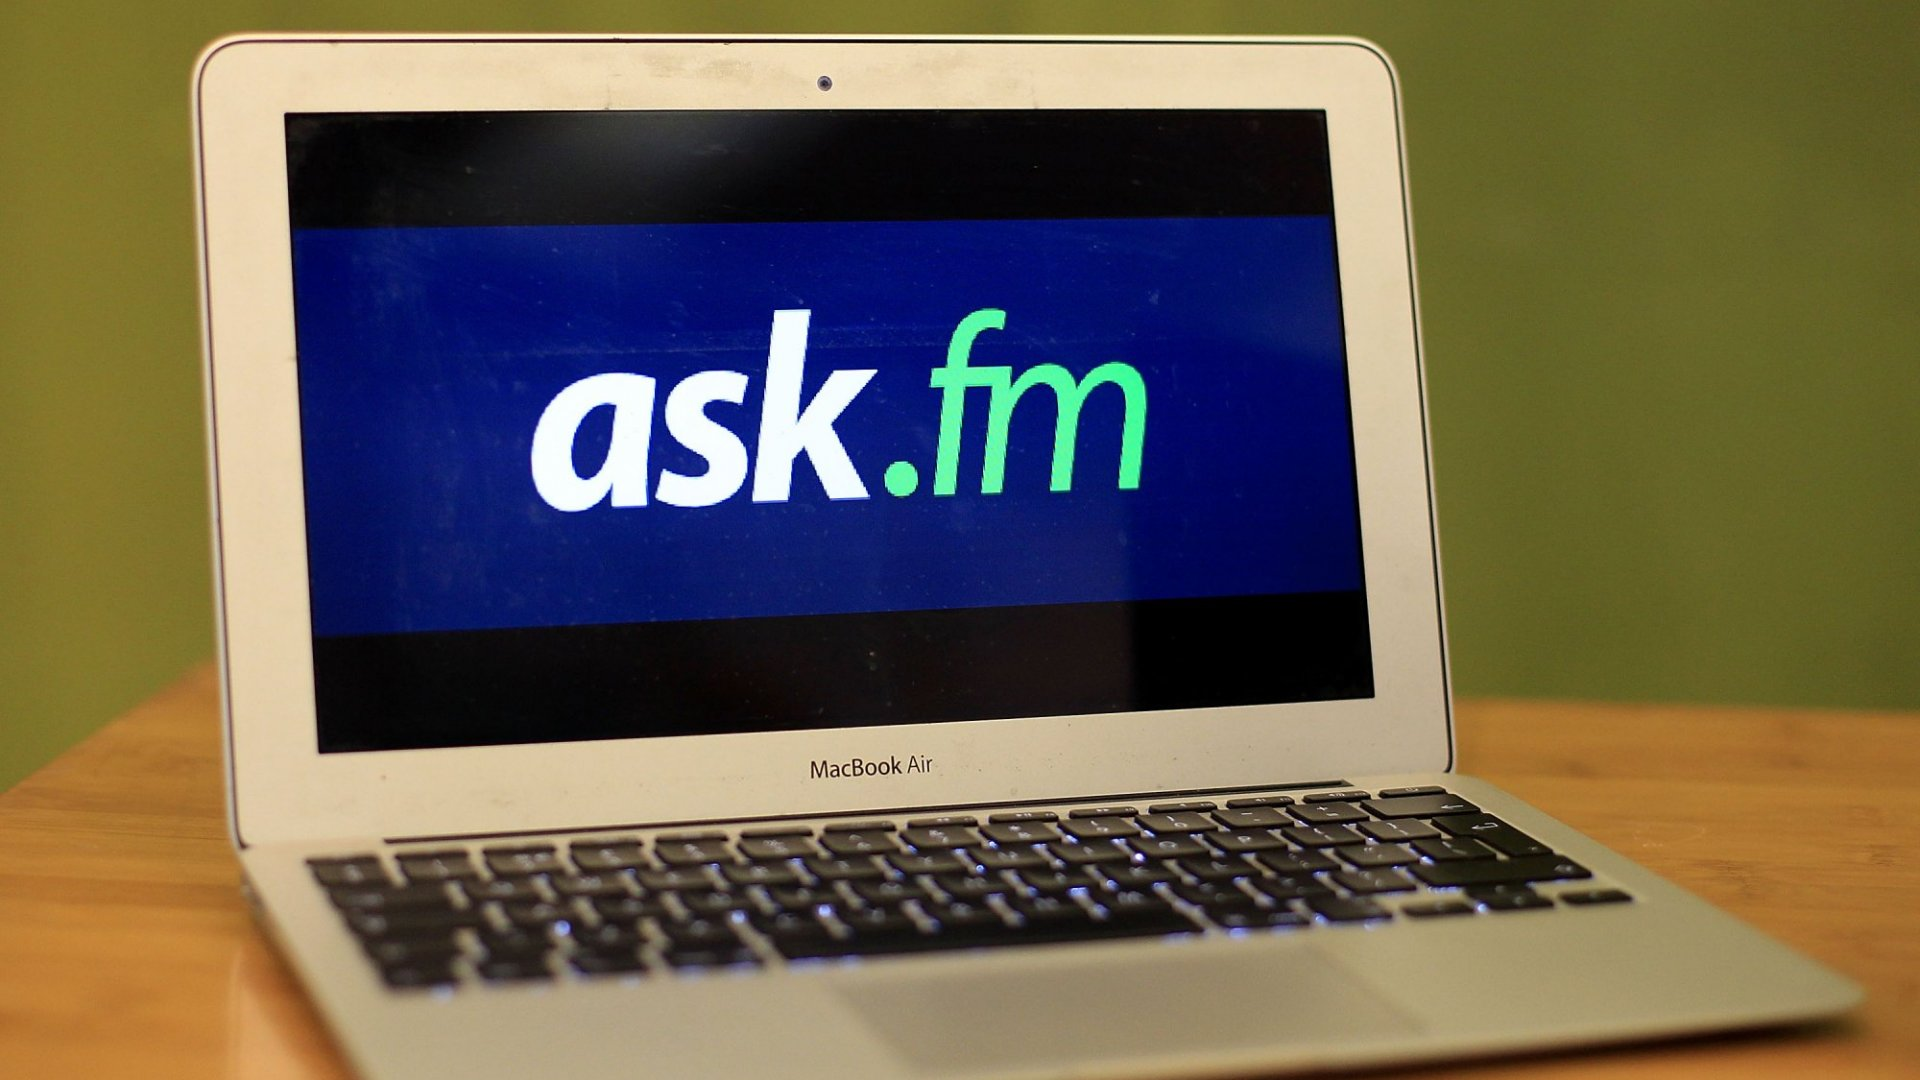 ASKfm and its more than 200 million users may soon be introduced to the blockchain.